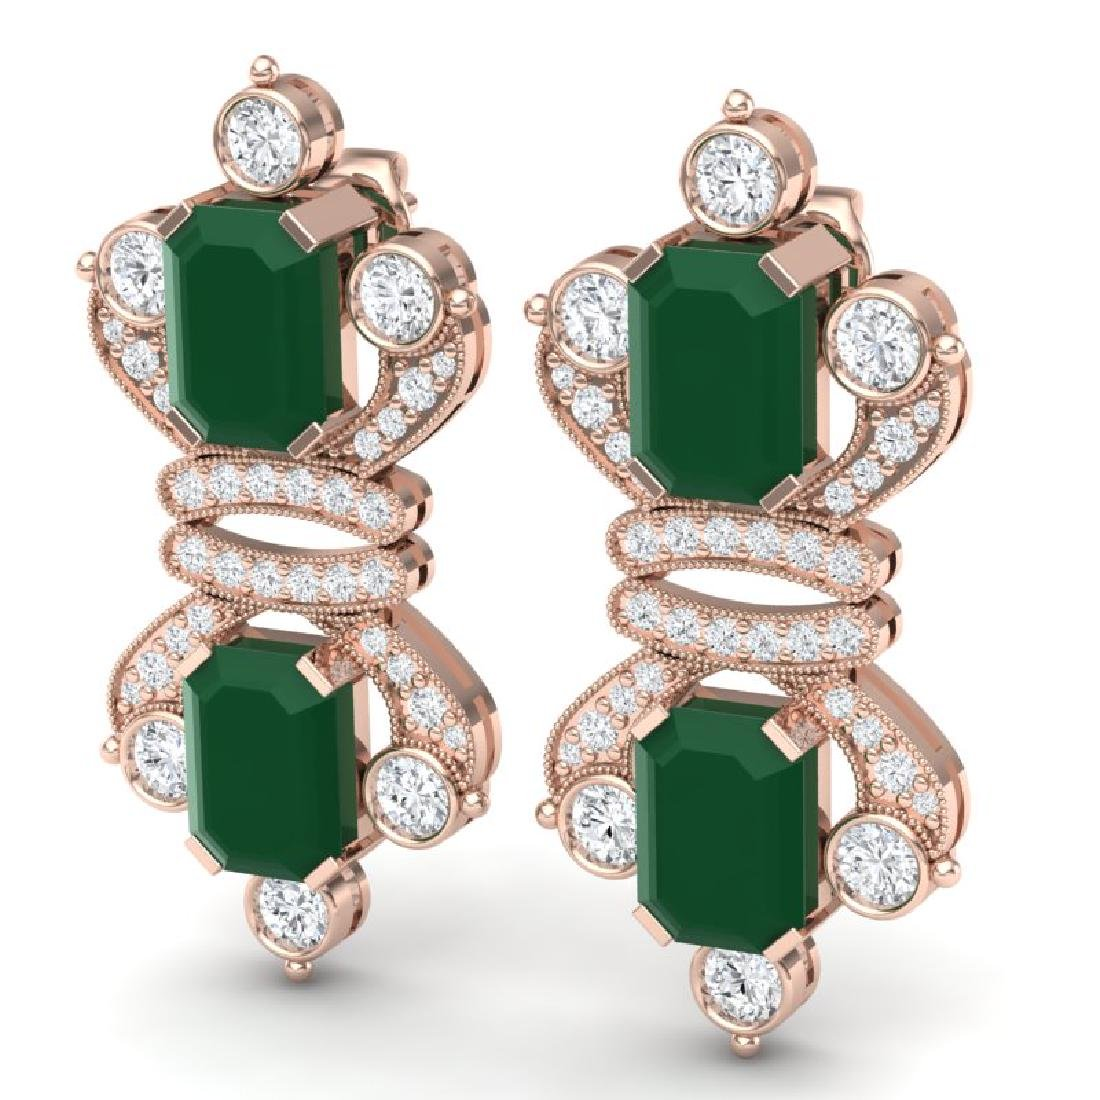 27.36 CTW Royalty Emerald & VS Diamond Earrings 18K - 2